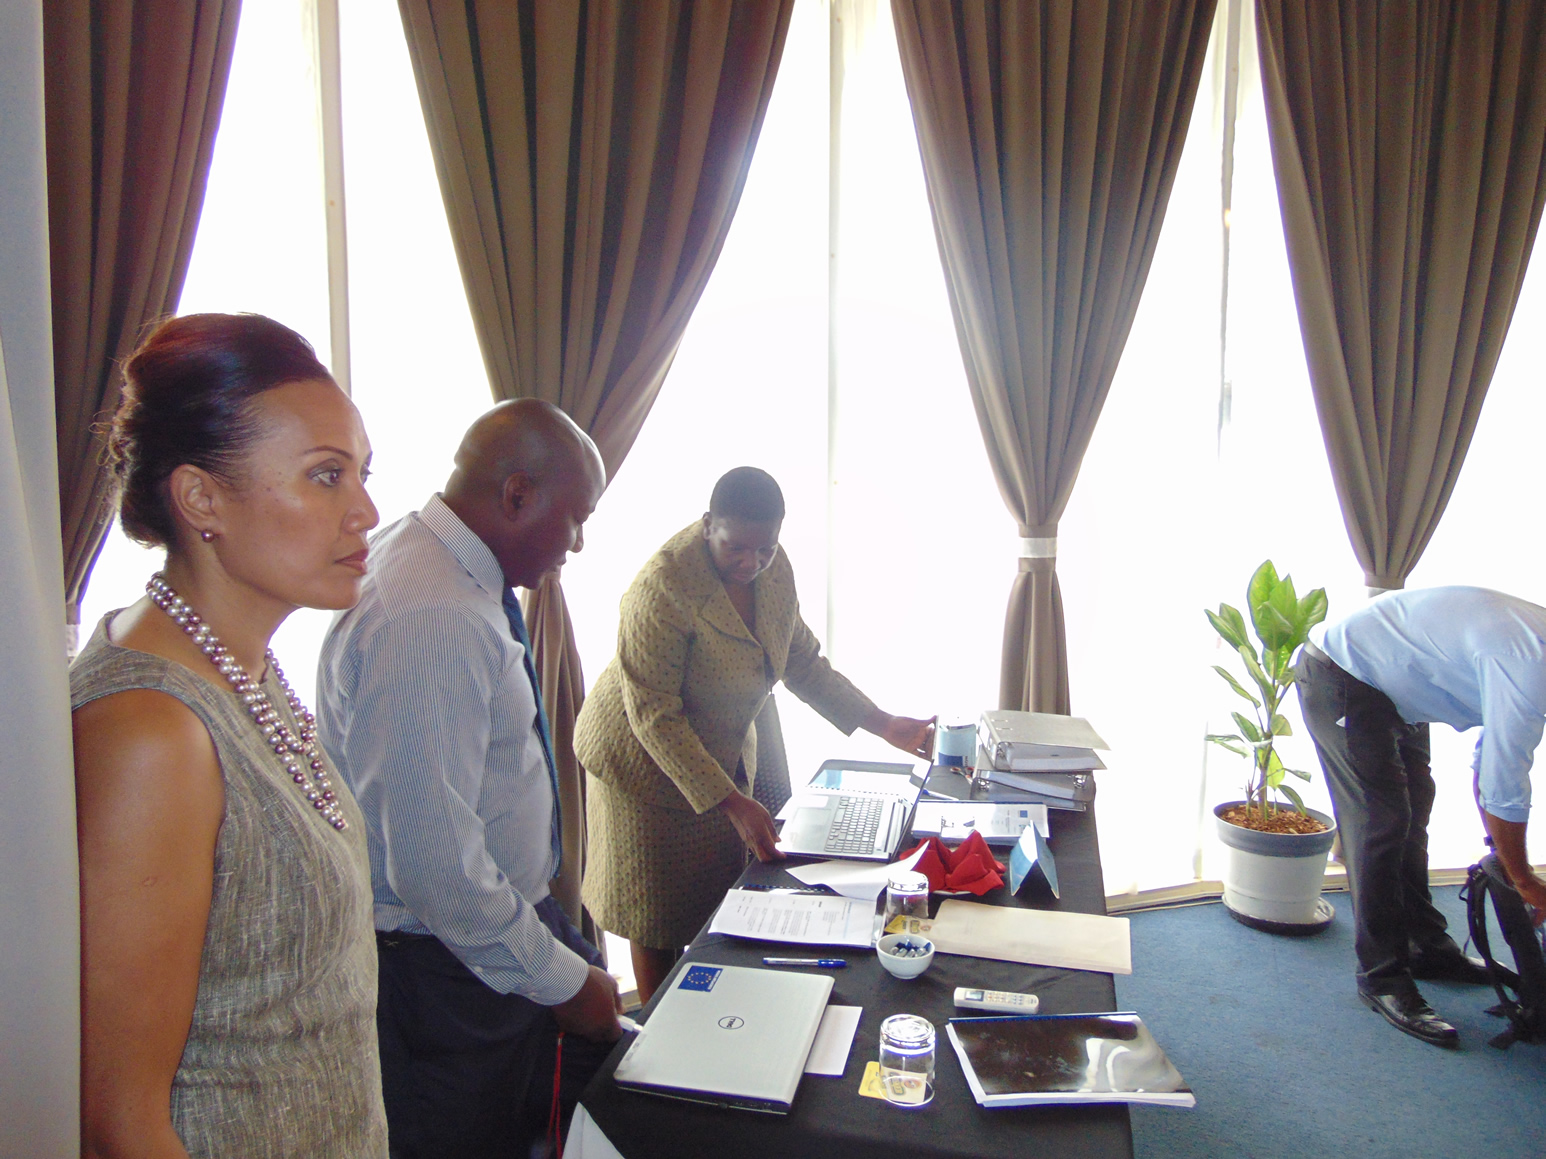 15 - 16 Oct 2015 - Trade Working Group - Port Vila 4